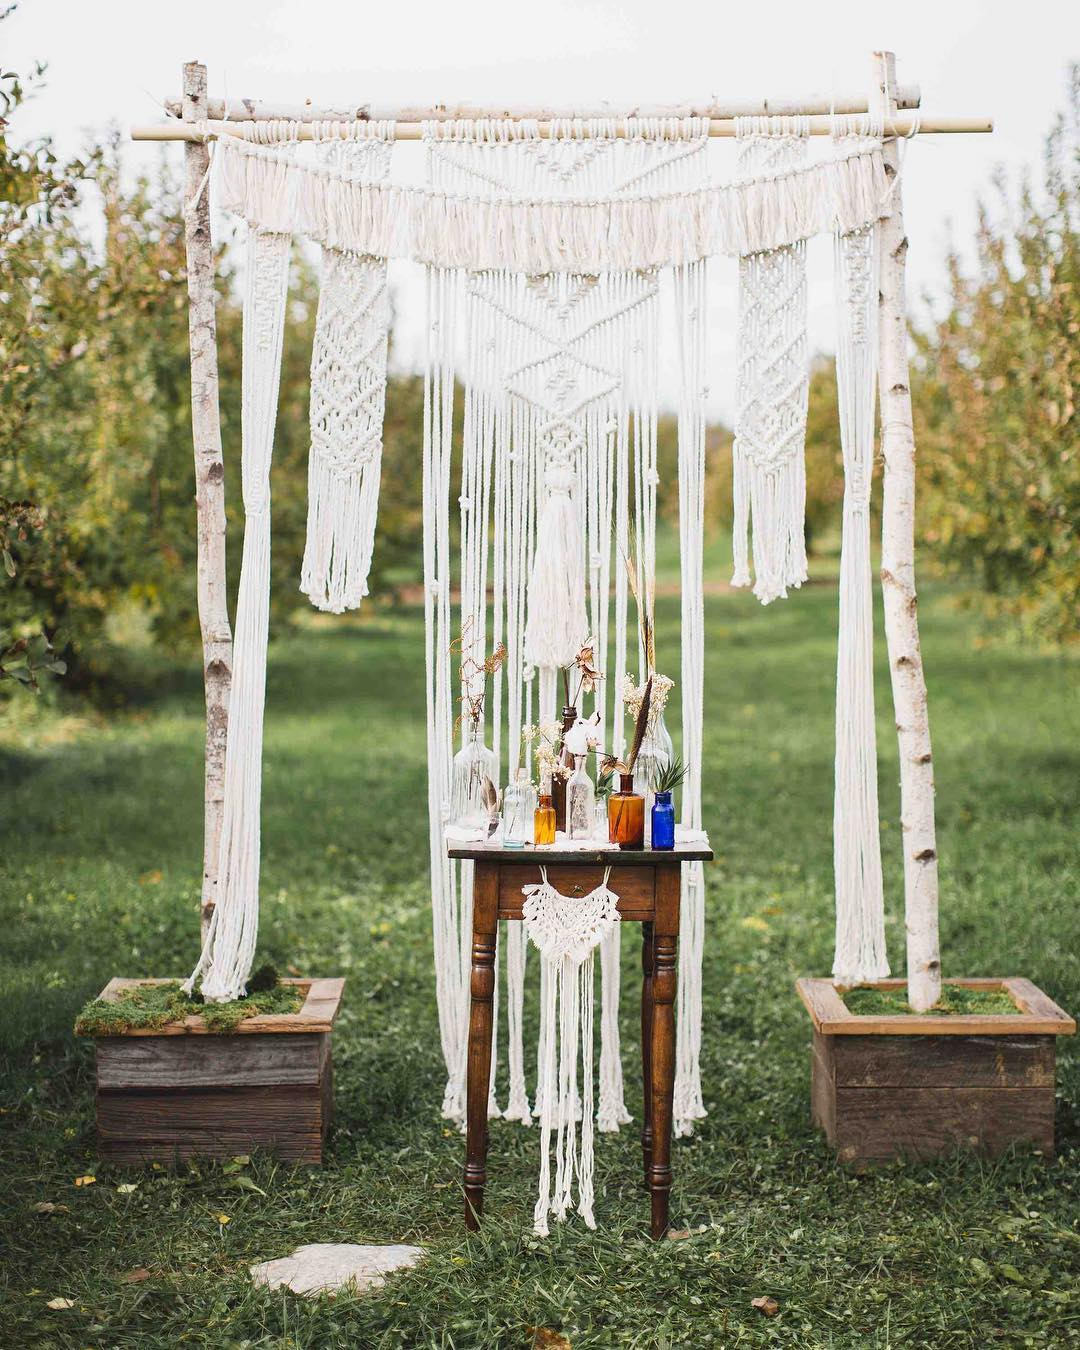 our lotus arbor wearing a custom creation by @rissa.bee ? . {this boho backdrop is available for rental with arbor. contact lotus for more info} . . #boho #bohostyle #macrame #custom #original #interesting #freespirited #arbor #ceremonybackdrop #lotusfloraldesigns #weddingdesign #weddingflorist #love